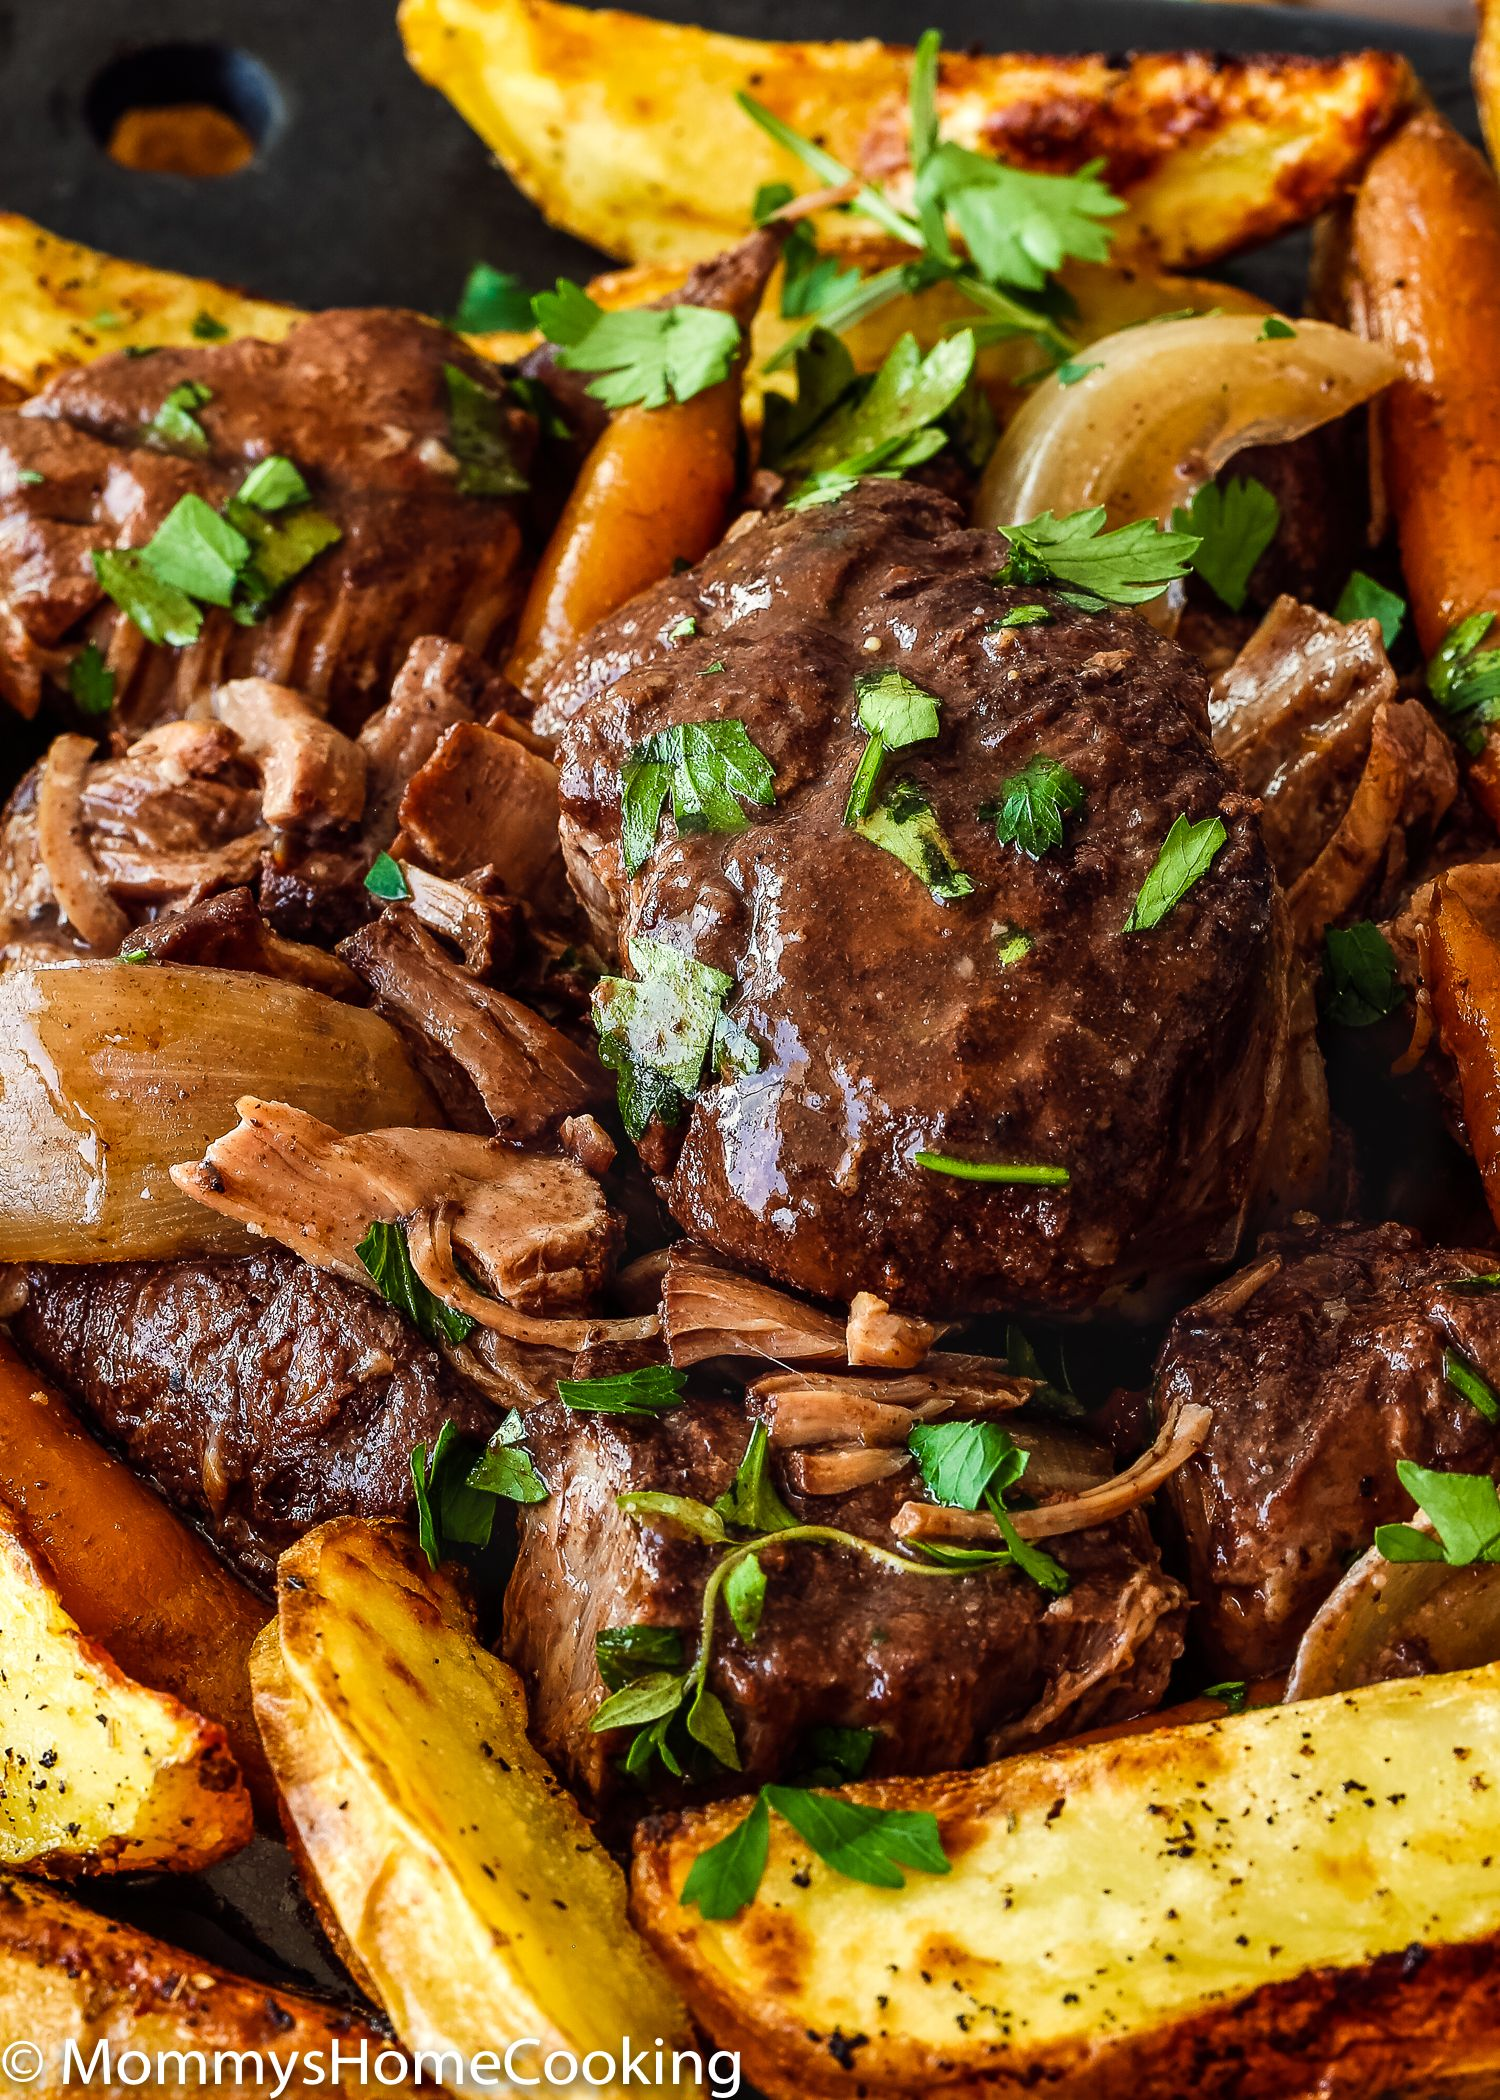 Slow Cooker Red Wine Hind Shank Recipe Slow Cooker Recipes Beef Recipes Meat Recipes